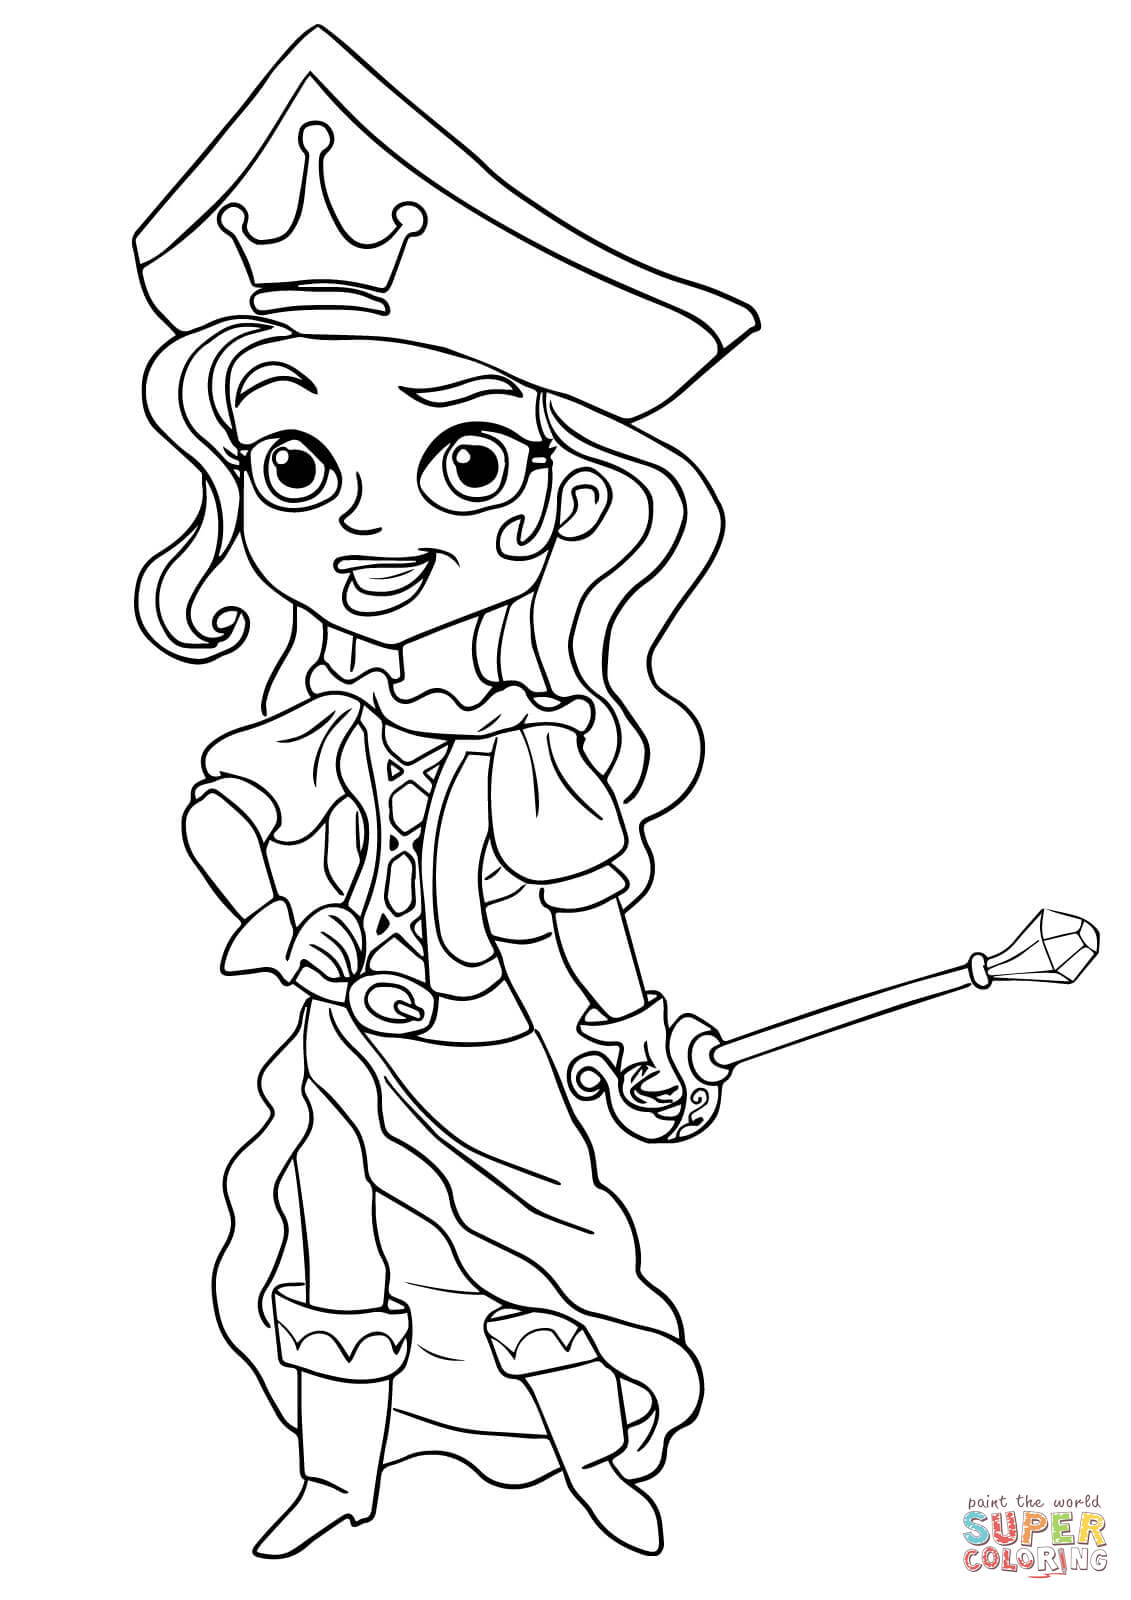 pirates pictures to colour pirates free to color for children pirates kids coloring pictures colour pirates to